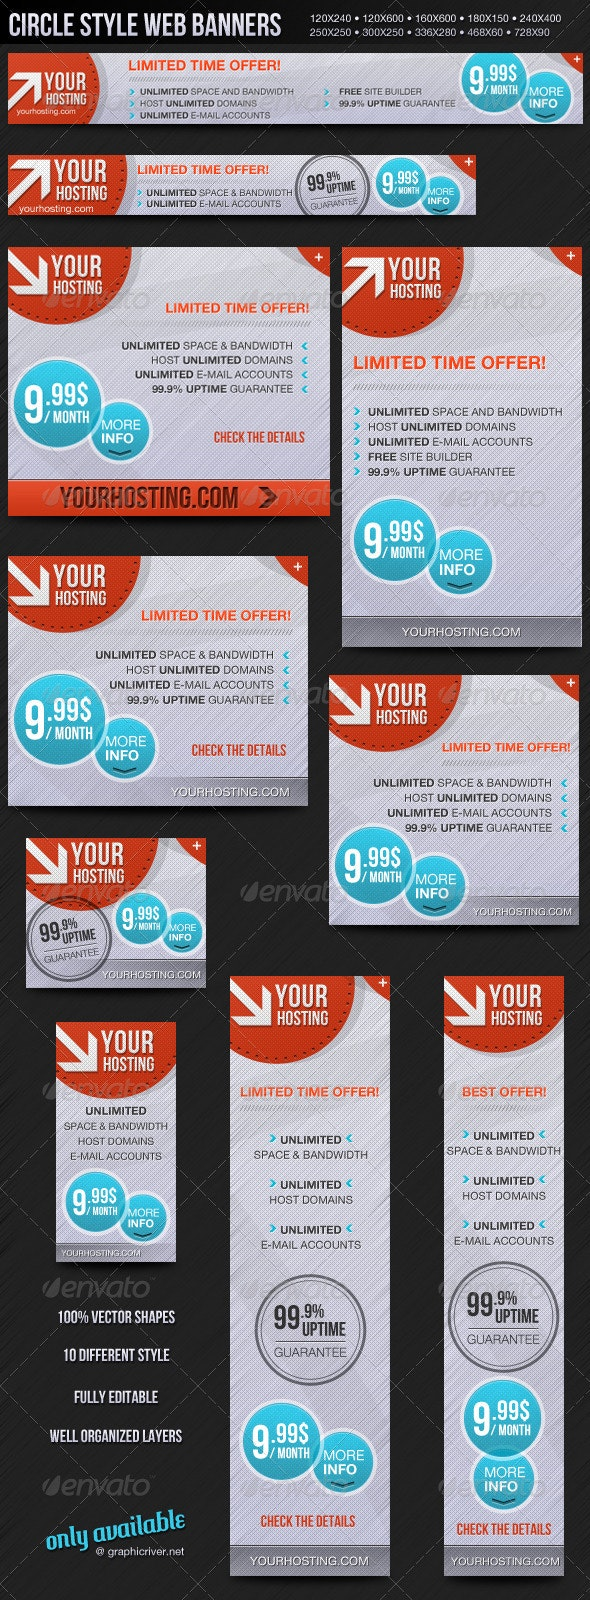 Circle Style Web Banners - Banners & Ads Web Elements